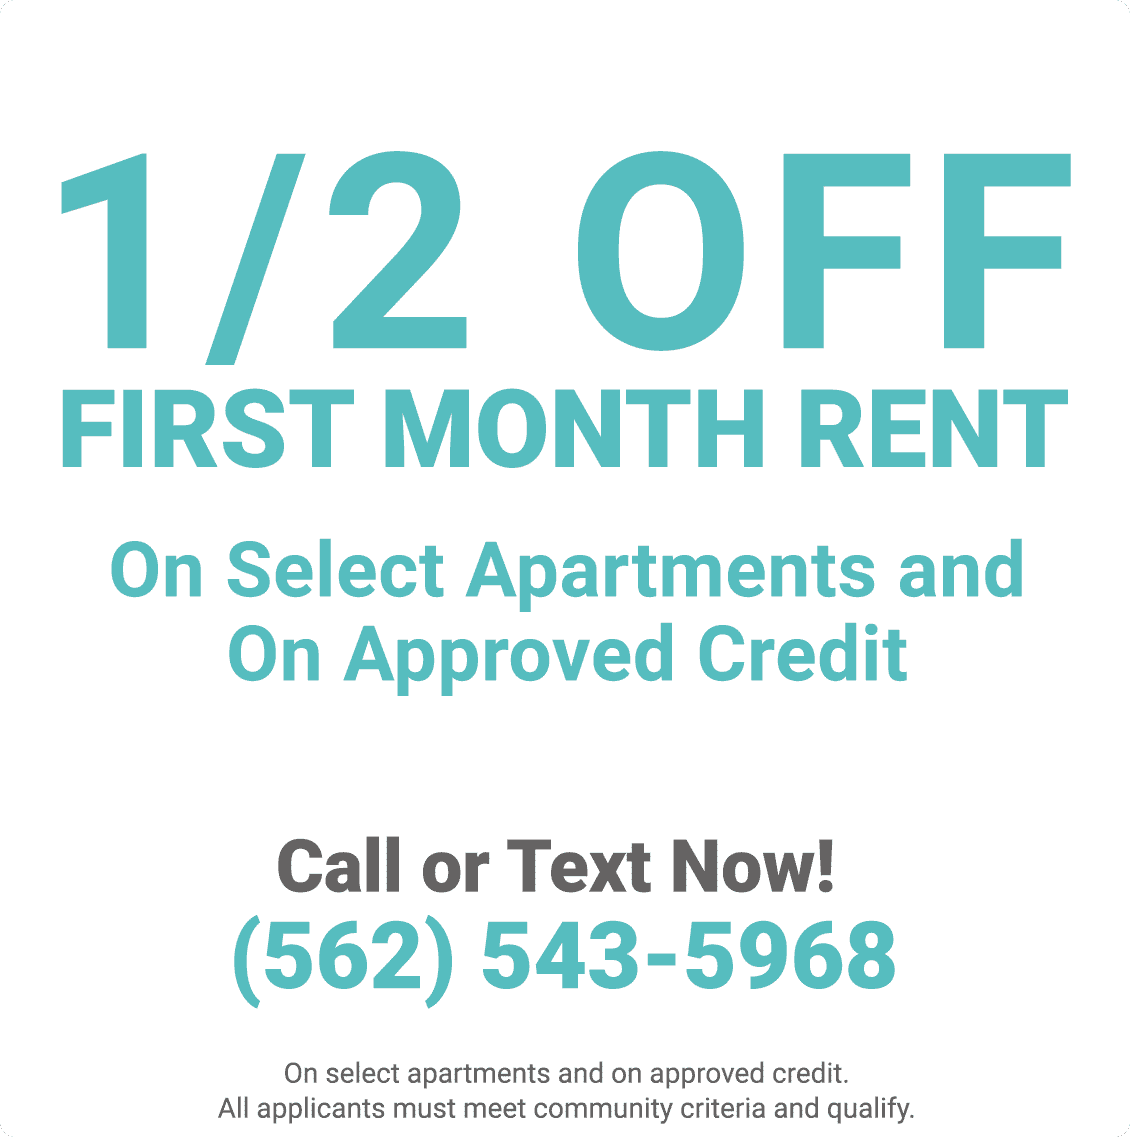 Half off first month rent on select apartments and on approved credit